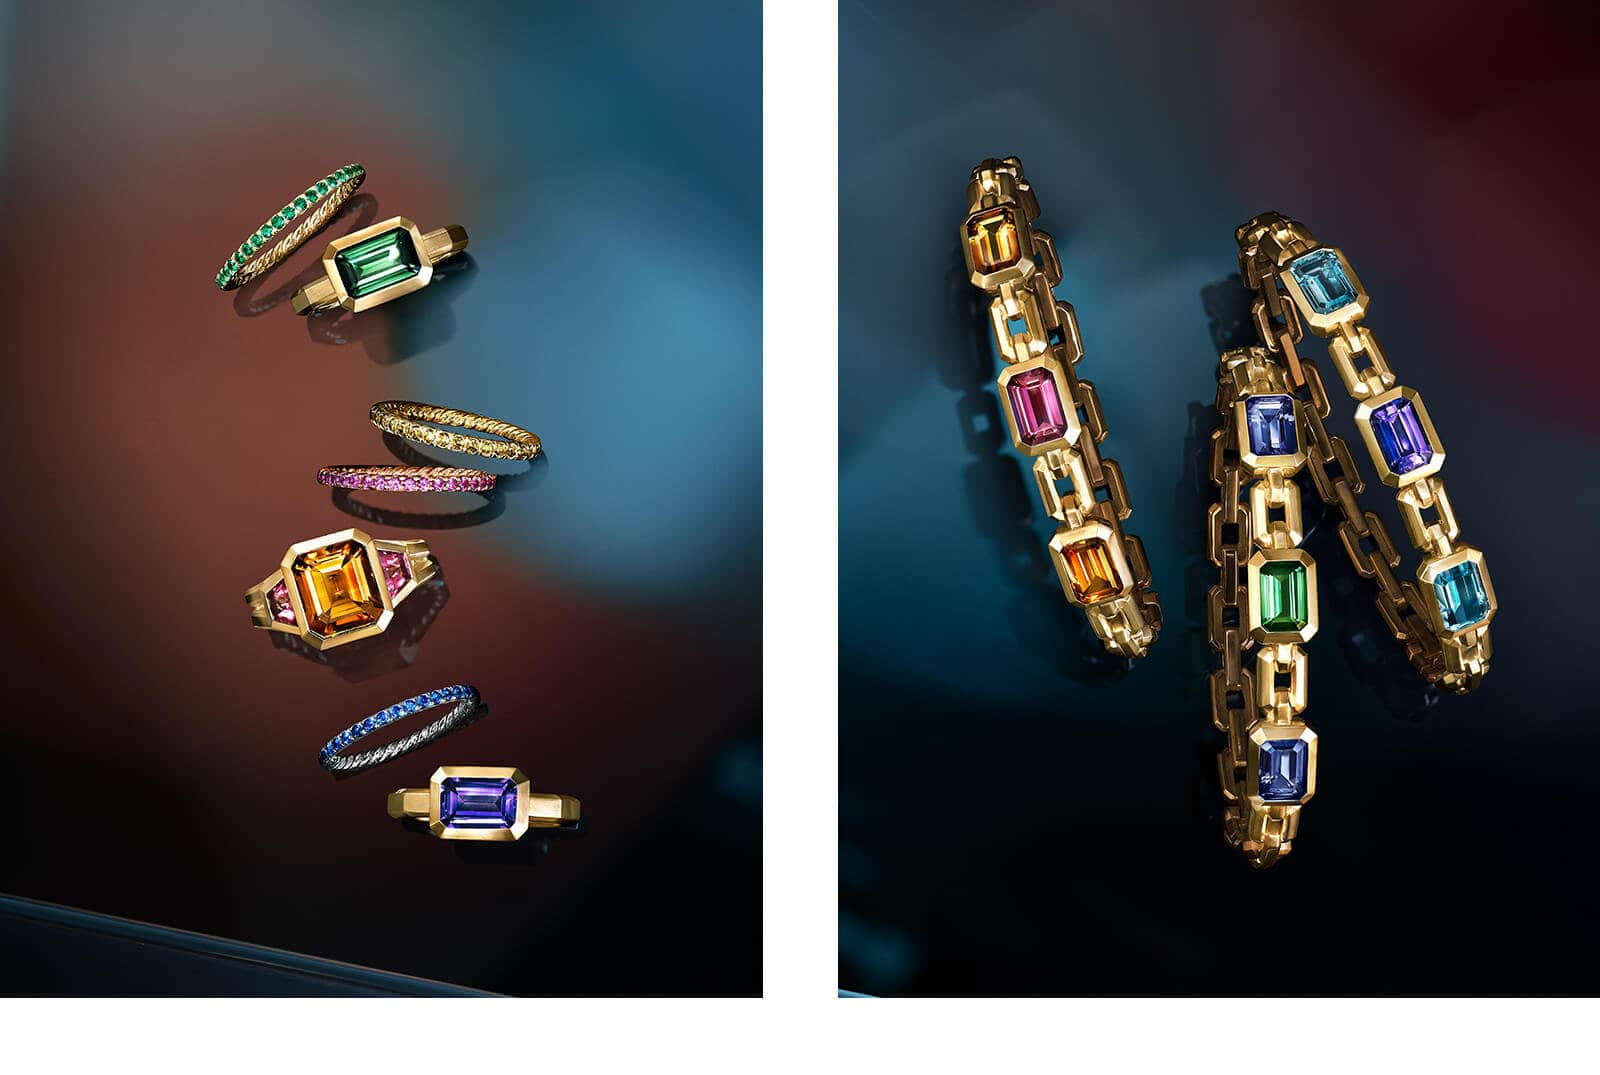 Two color photographs show David Yurman jewelry atop reflective backgrounds with multi-colored reflections of light. Left: Three DY Eden bands are shot from above and placed next to three Novella rings. The bands are crafted from 18K yellow gold, 18K rose gold or platinum with tsavorites or yellow, pink or blue sapphires. The Novella rings are crafted from 18K yellow gold with green tourmaline, Madeira citrine and rubellite, or tanzanite. Right: Three Novella chain bracelets in 18K yellow gold are shot from above and are each set with three colored gemstones, including Madeira citrine and pink tourmaline, iolite and green tourmaline, and light blue topaz and tanzanite.